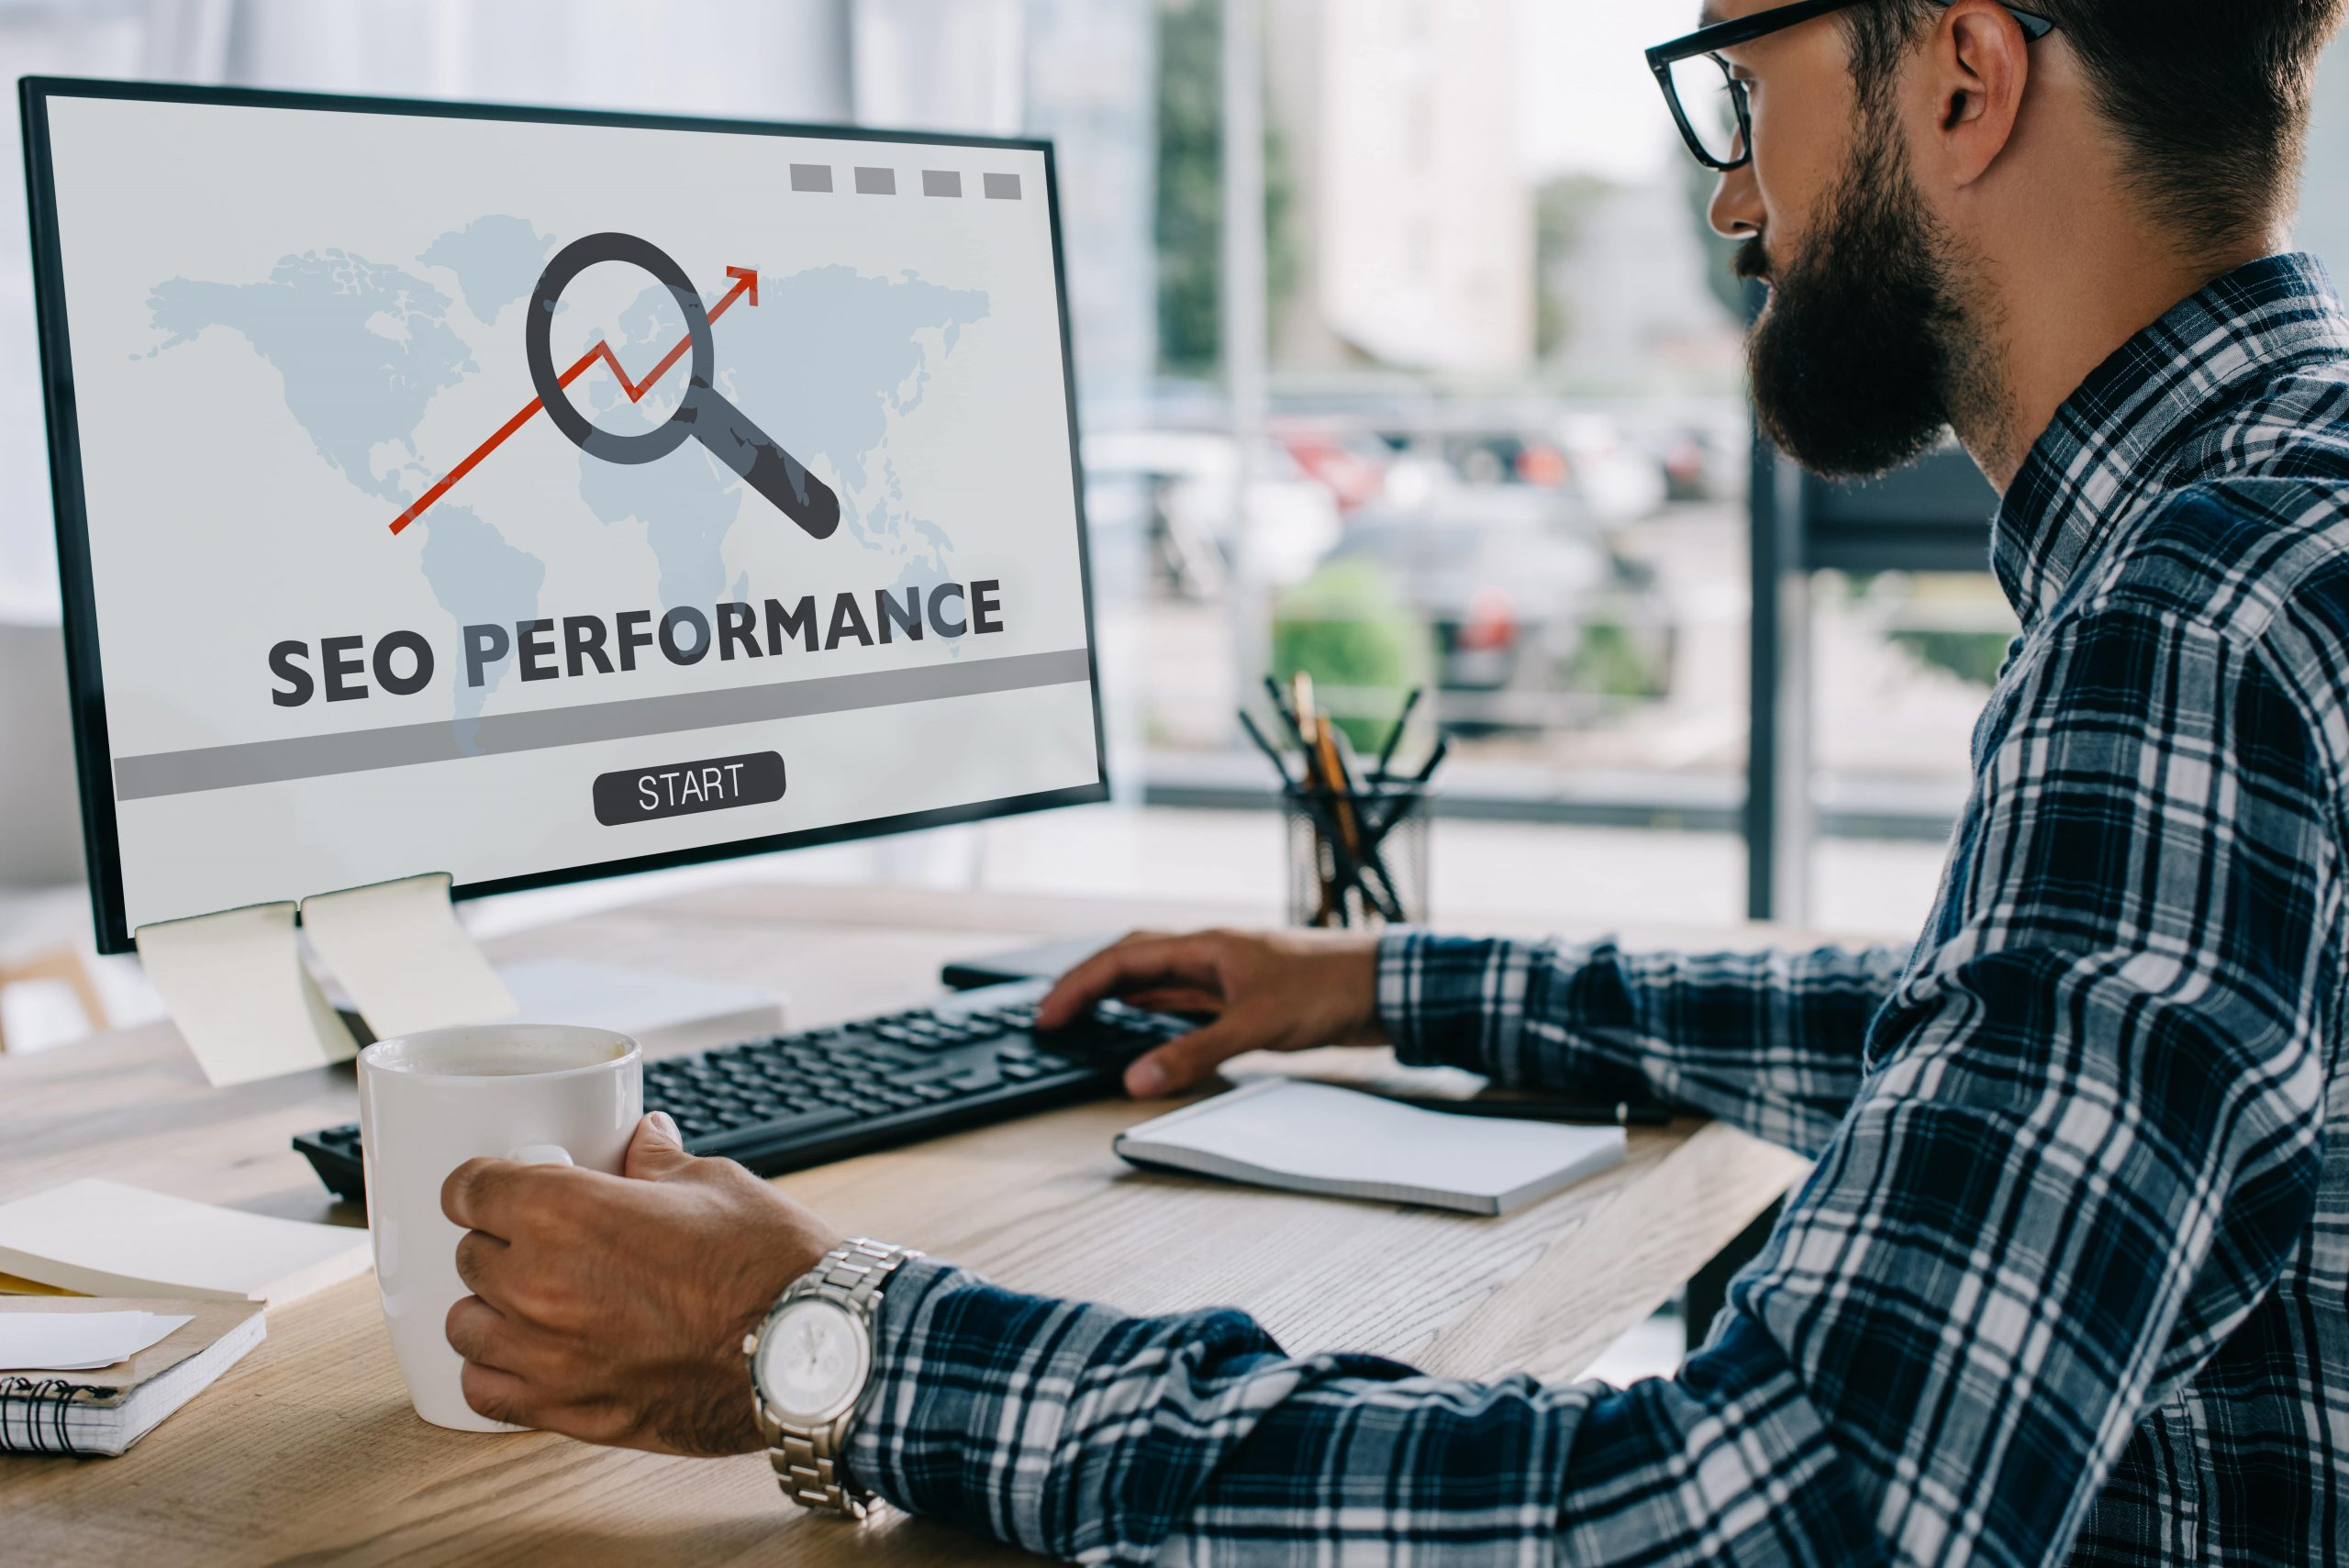 How Your Business Could Benefit From SEO